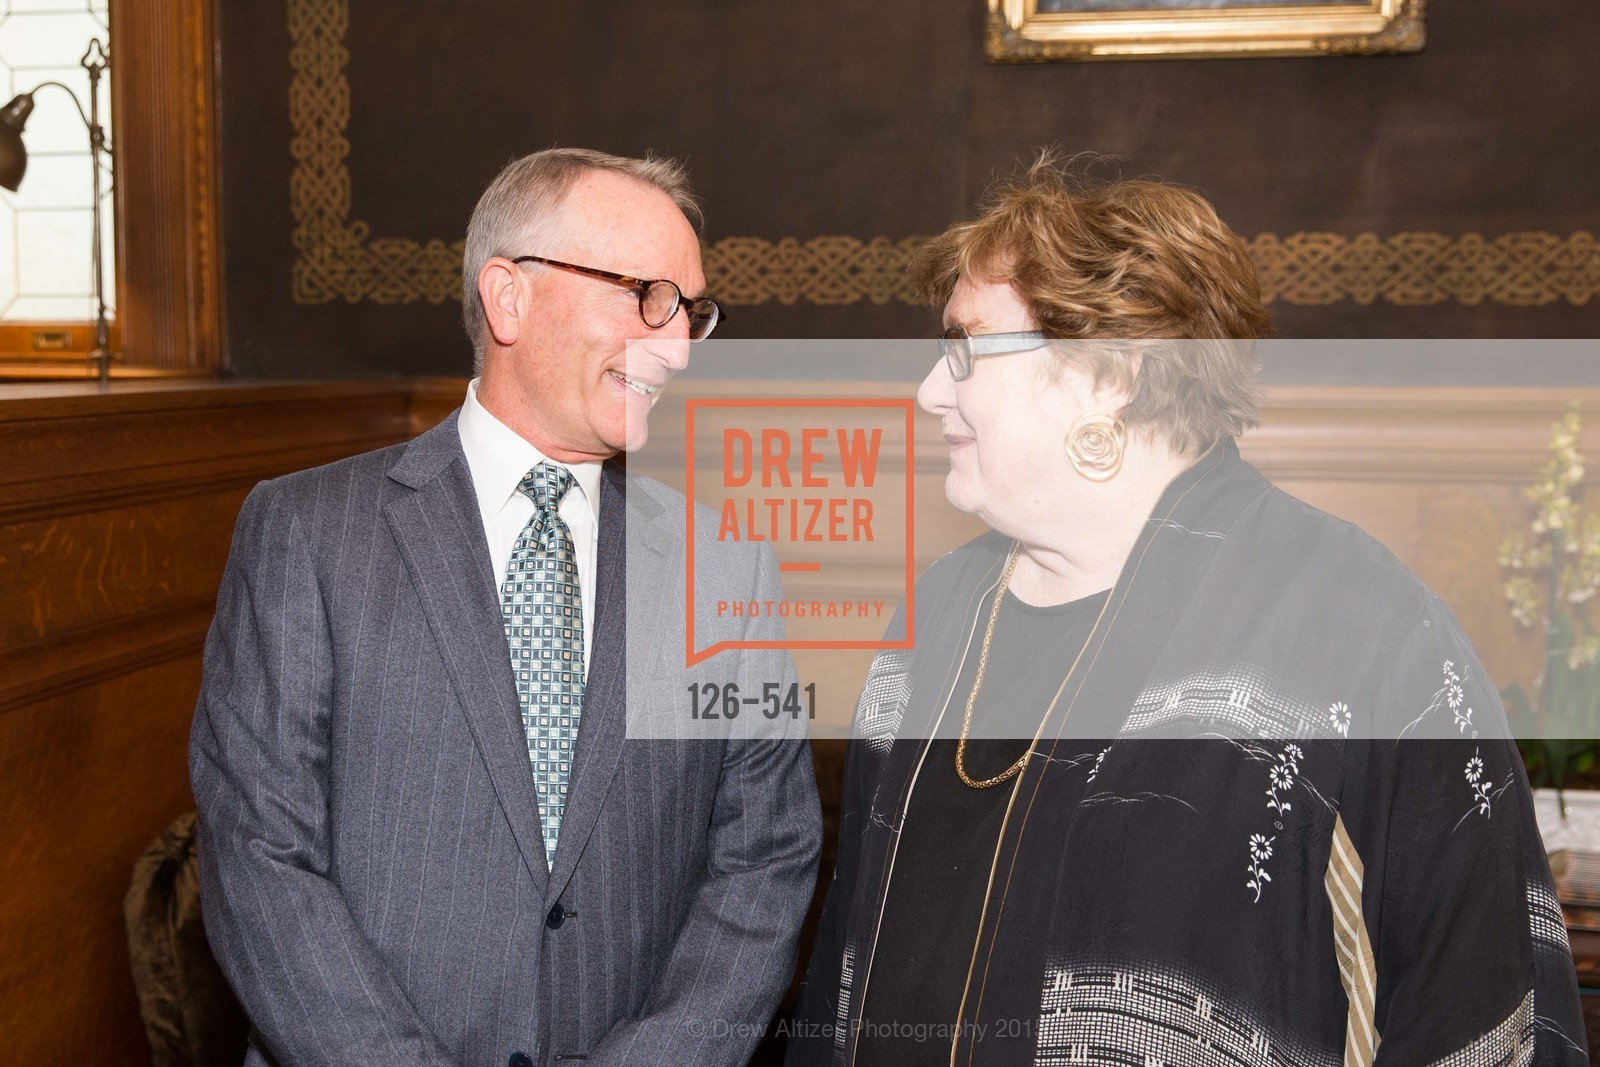 David Wessel, Linda Jo Fitz, Ceremony Inaugurating the Campaign for San Francisco Heritage & Haas-Lilienthal House, Haas-Lilienthal House. 2007 Franklin Street, November 18th, 2015,Drew Altizer, Drew Altizer Photography, full-service agency, private events, San Francisco photographer, photographer california